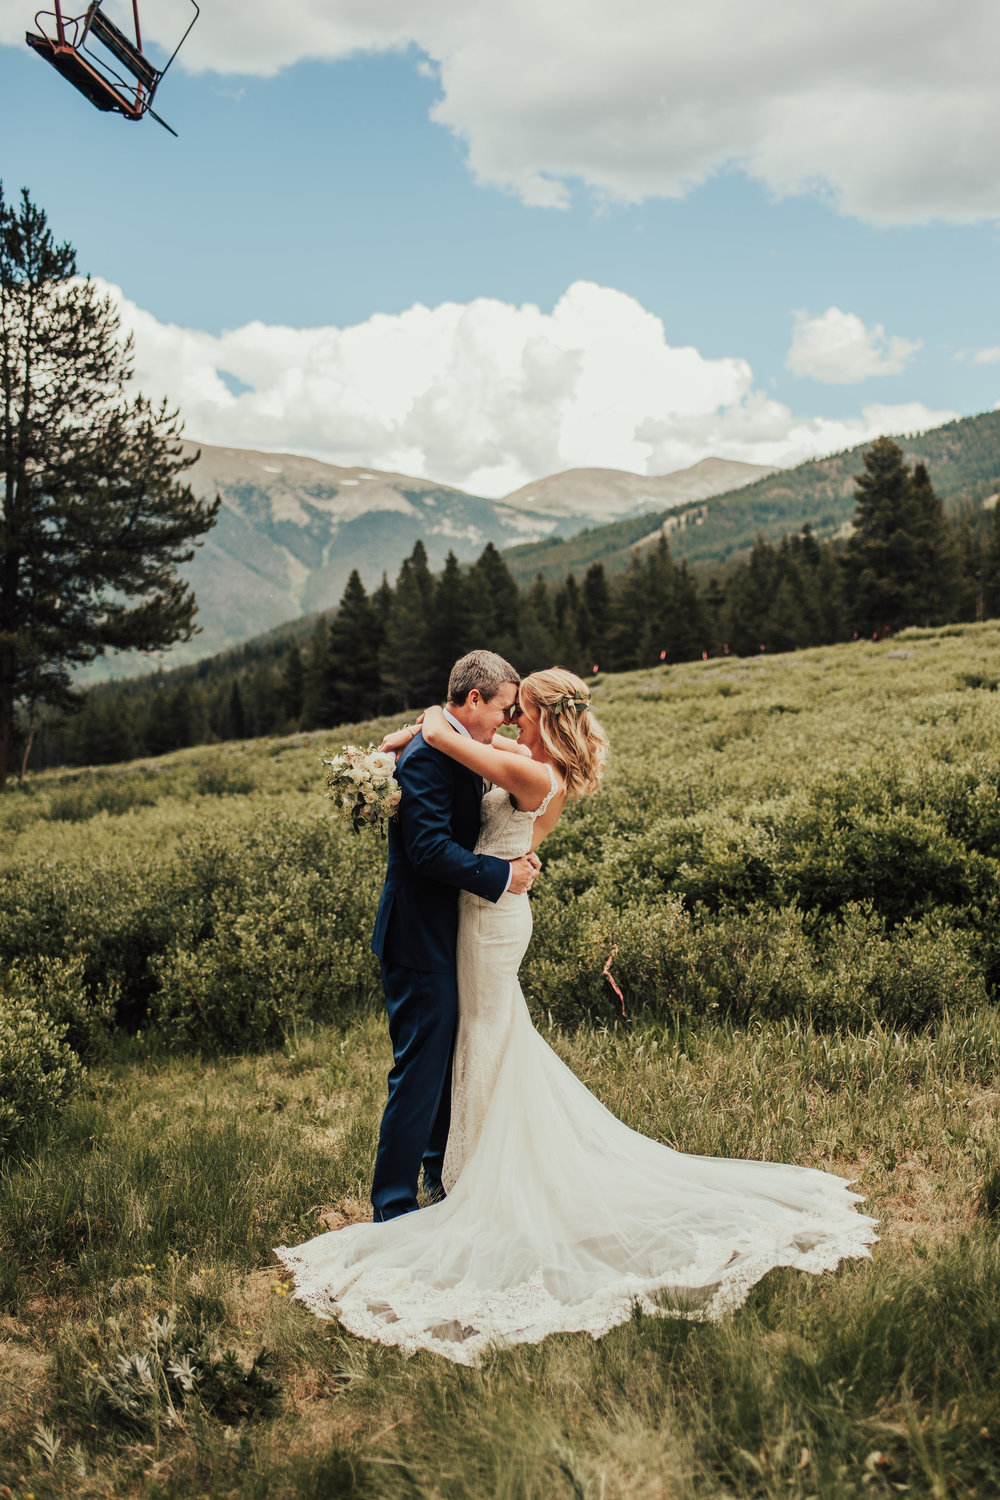 Susan | July 2017 | Copper Mountain, Colorado |  Tessa Tadlock Photography